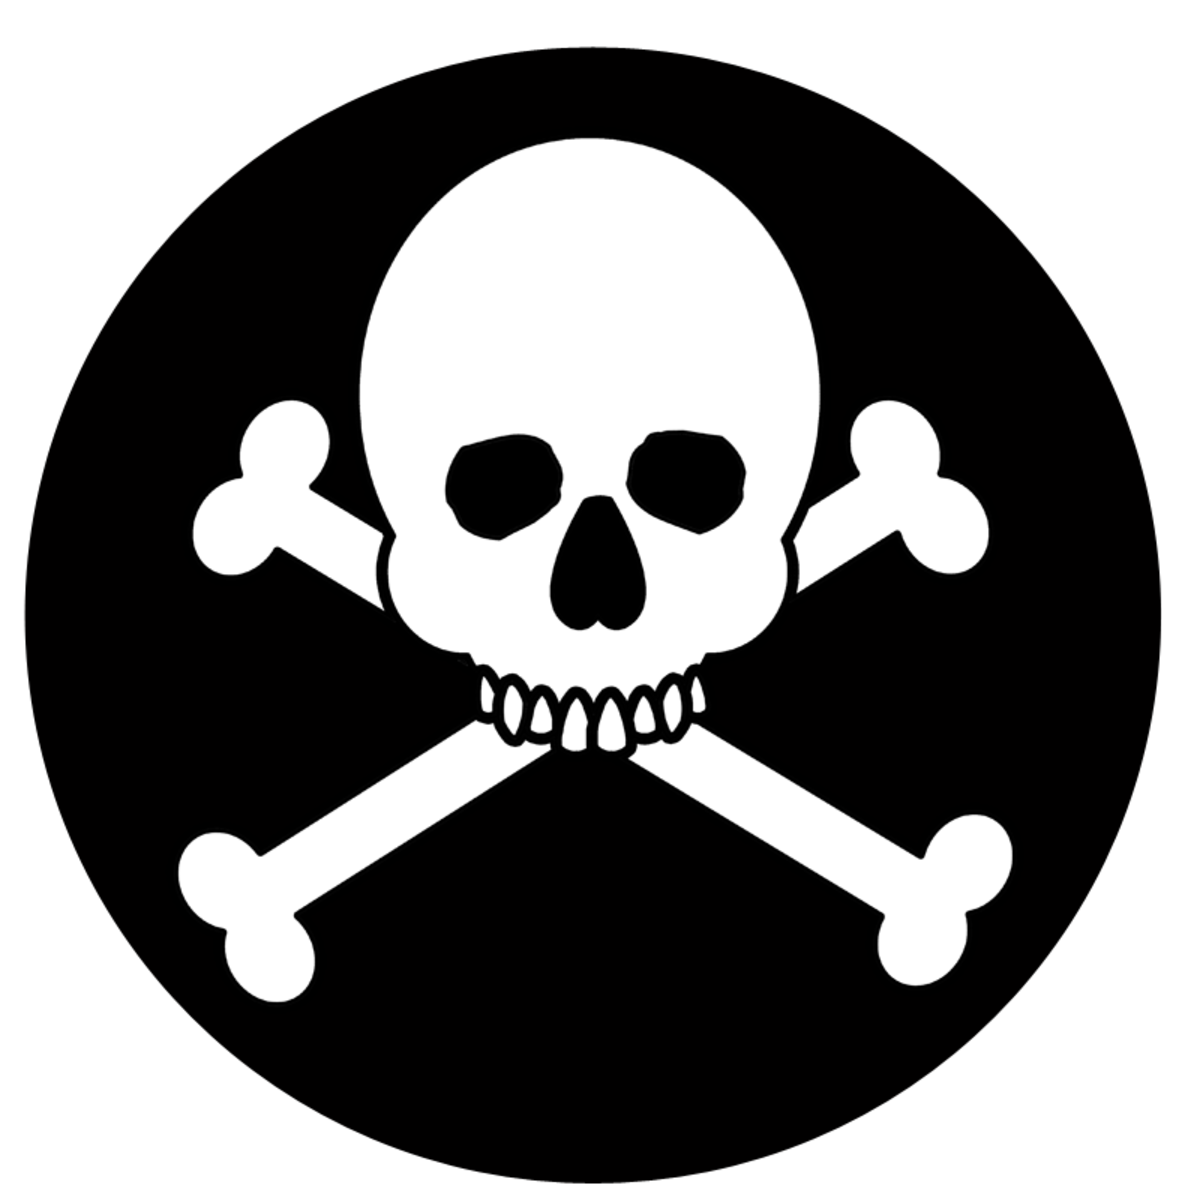 Black and white skull and crossbones.